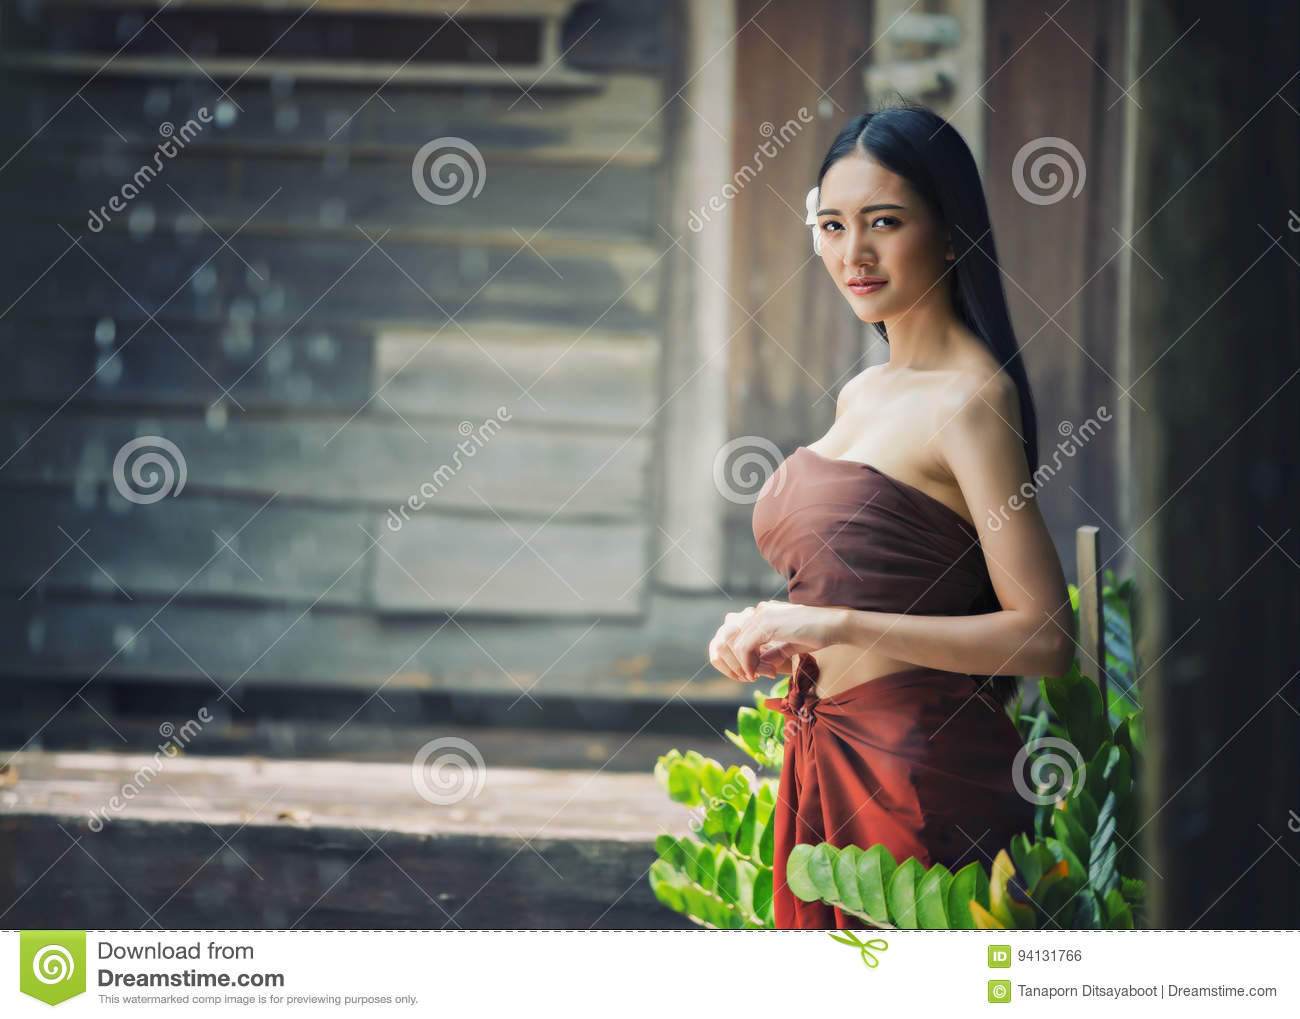 https://thumbs.dreamstime.com/z/thai-beautiful-woman-wearing-typical-tradition-countryside-thailand-94131766.jpg